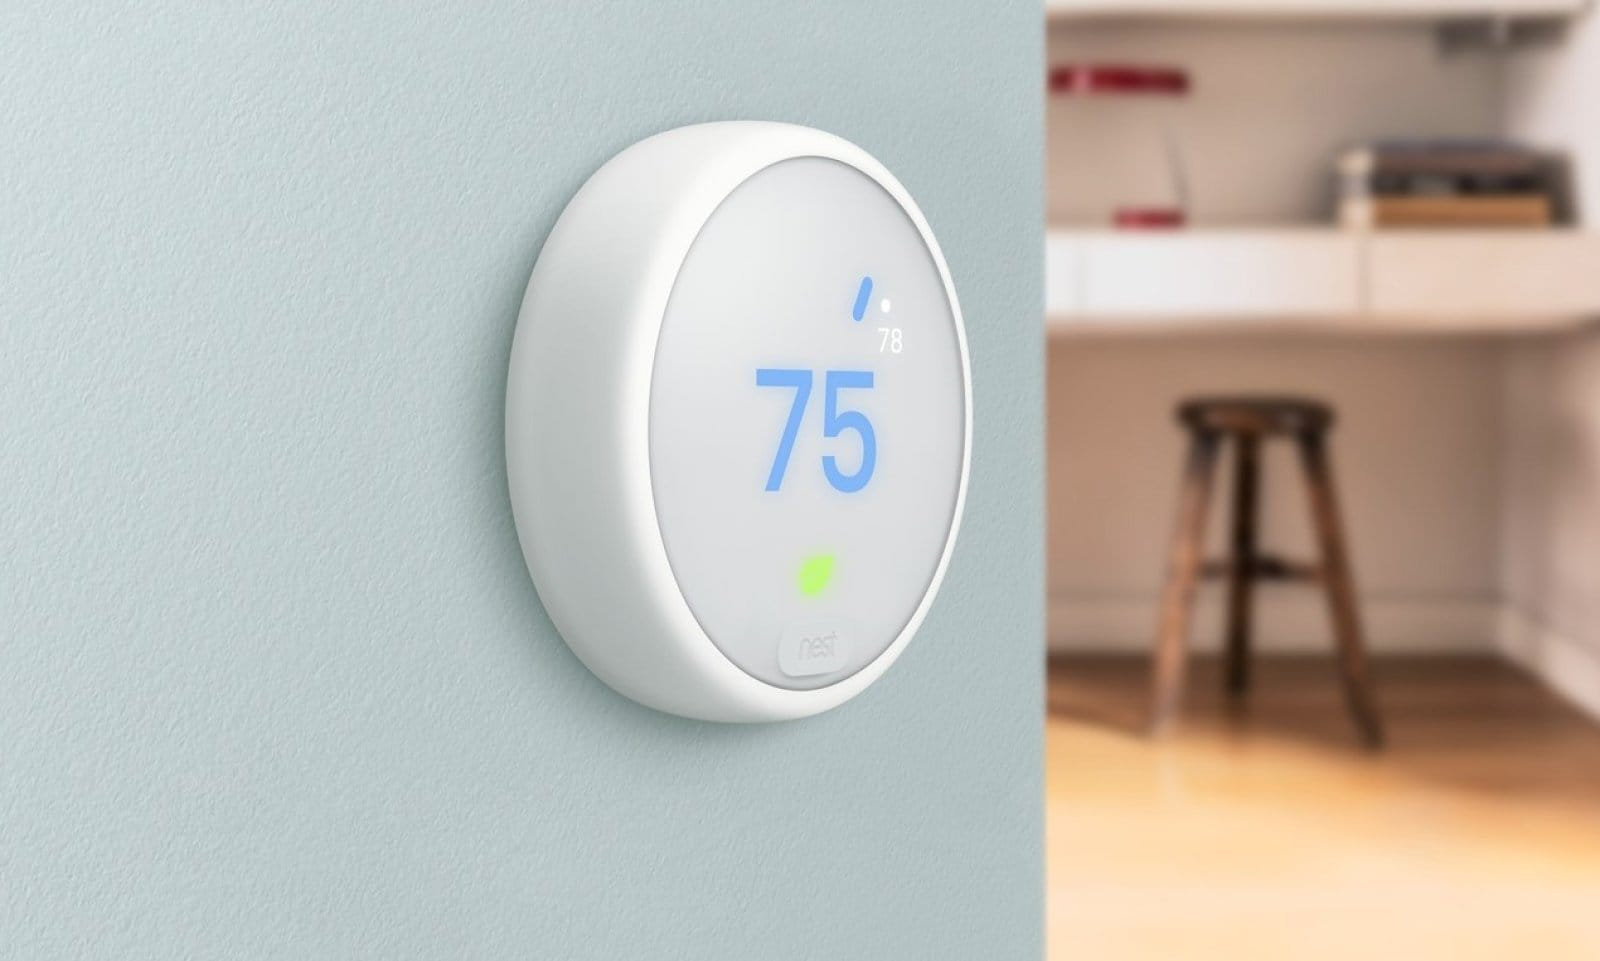 Google is adding new Nest routines to further automate your home